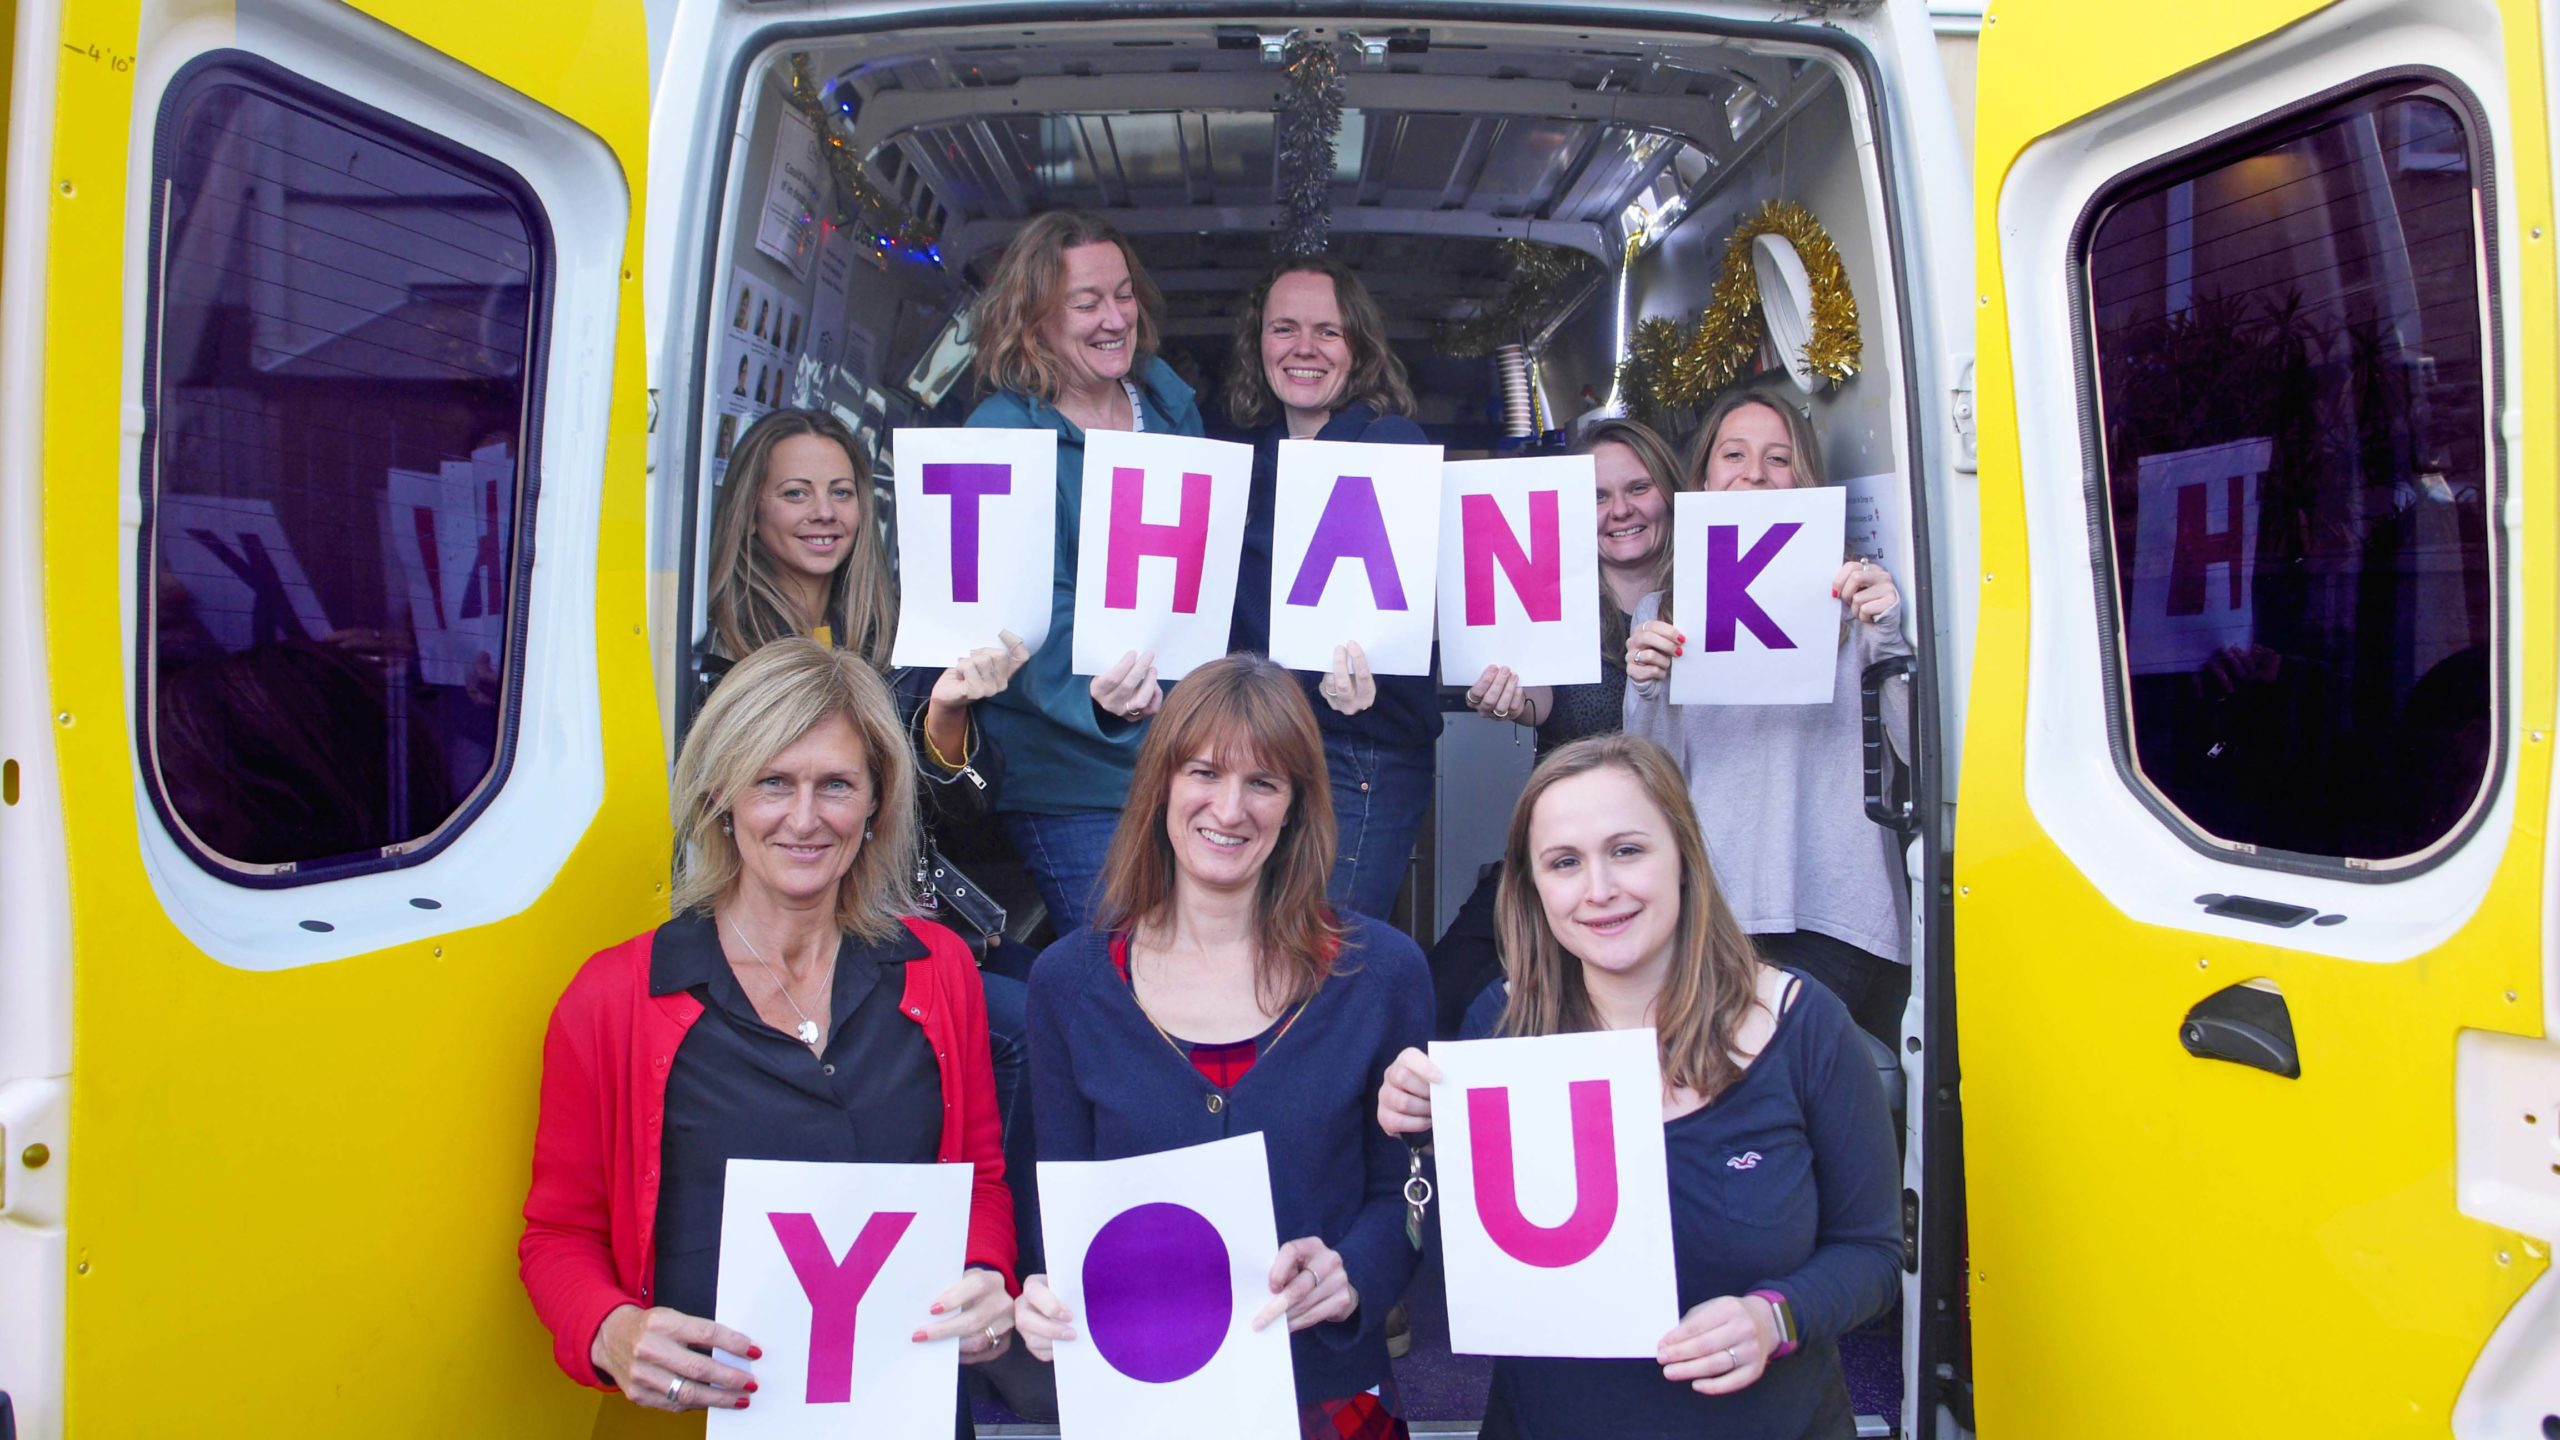 One25 staff say thank you on the van